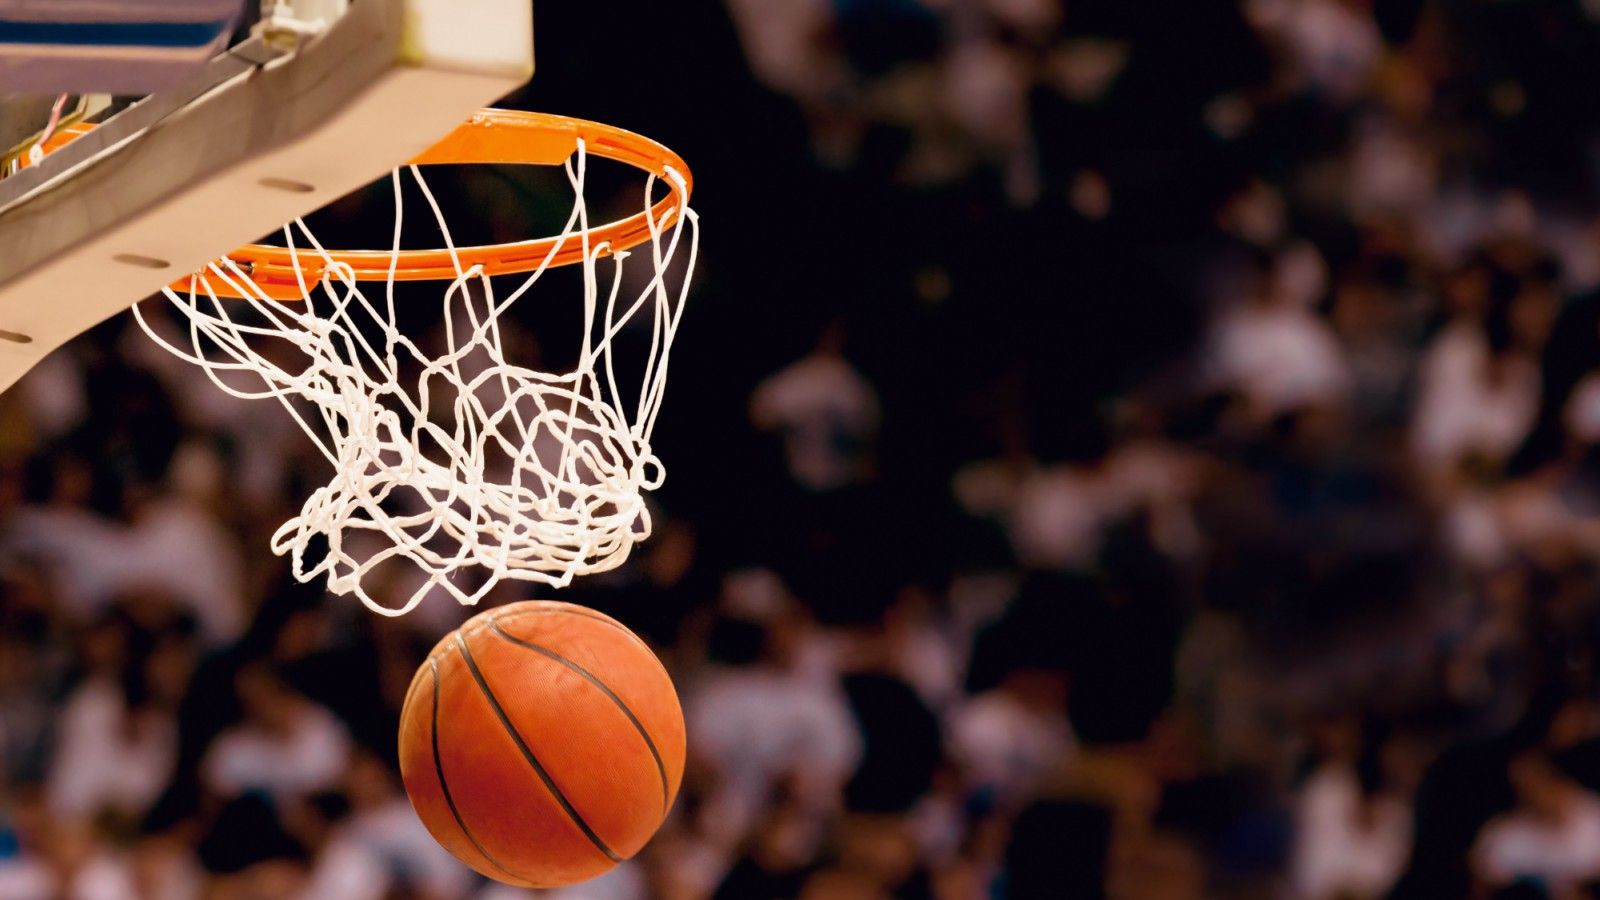 Hotels Near Wichita State University - Basketball